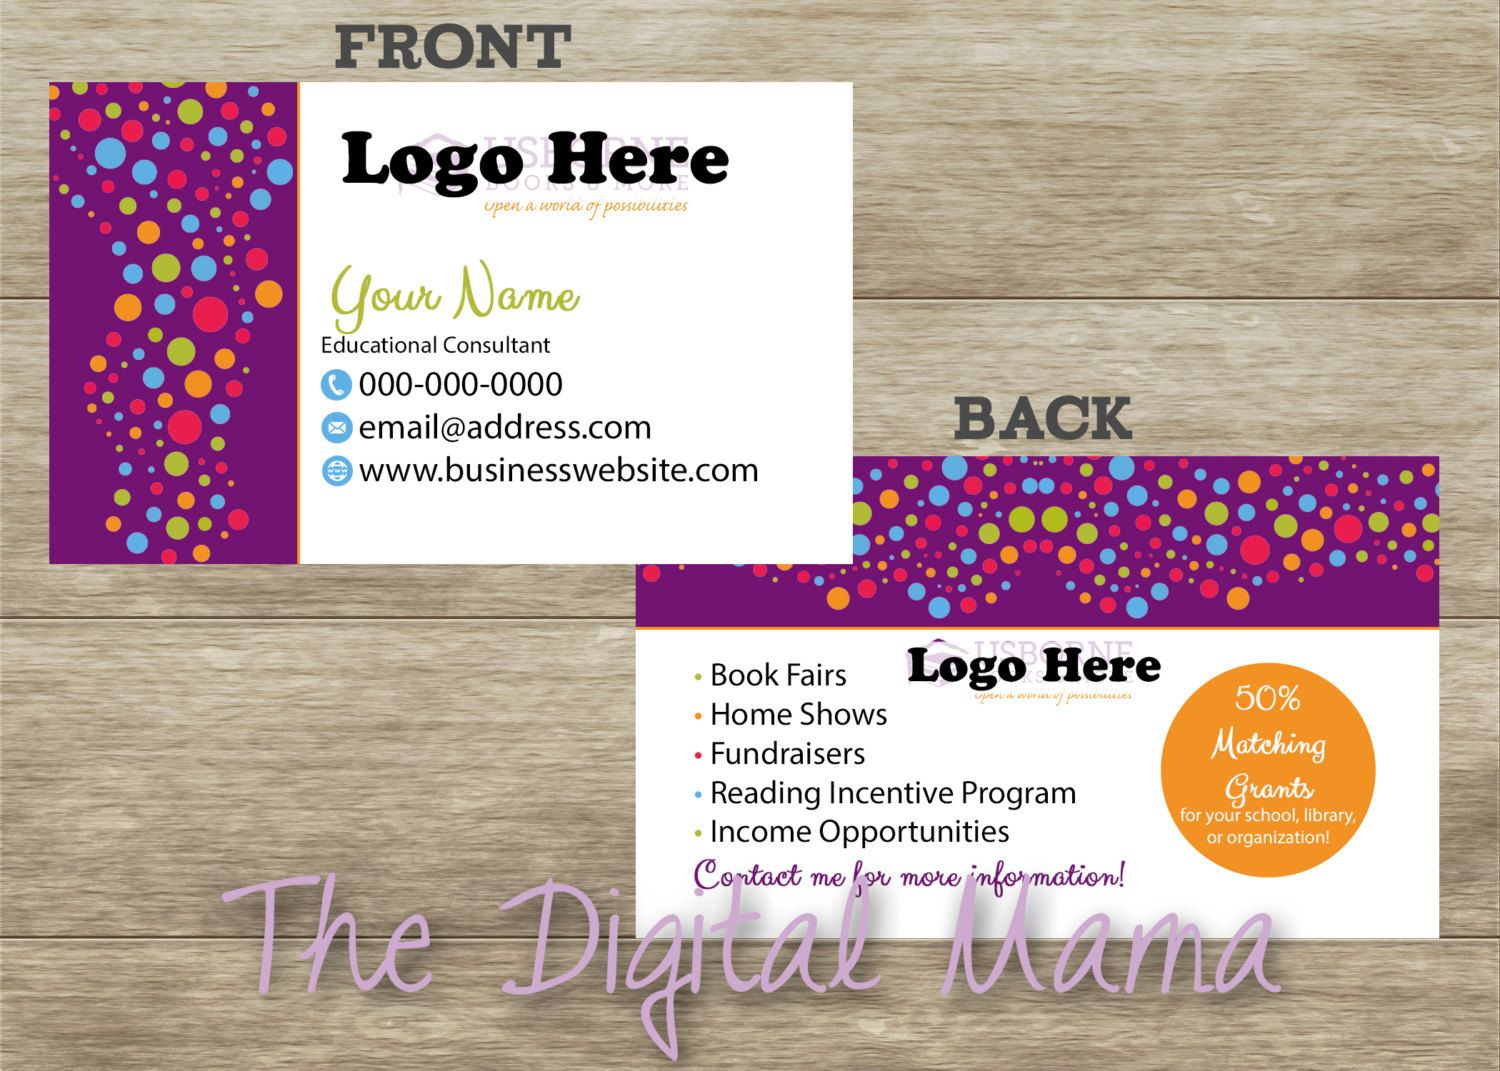 Usborne Books And More Consultant Business Card Design Usborne Books Usborne Books Consultant Usborne Books Finance Books